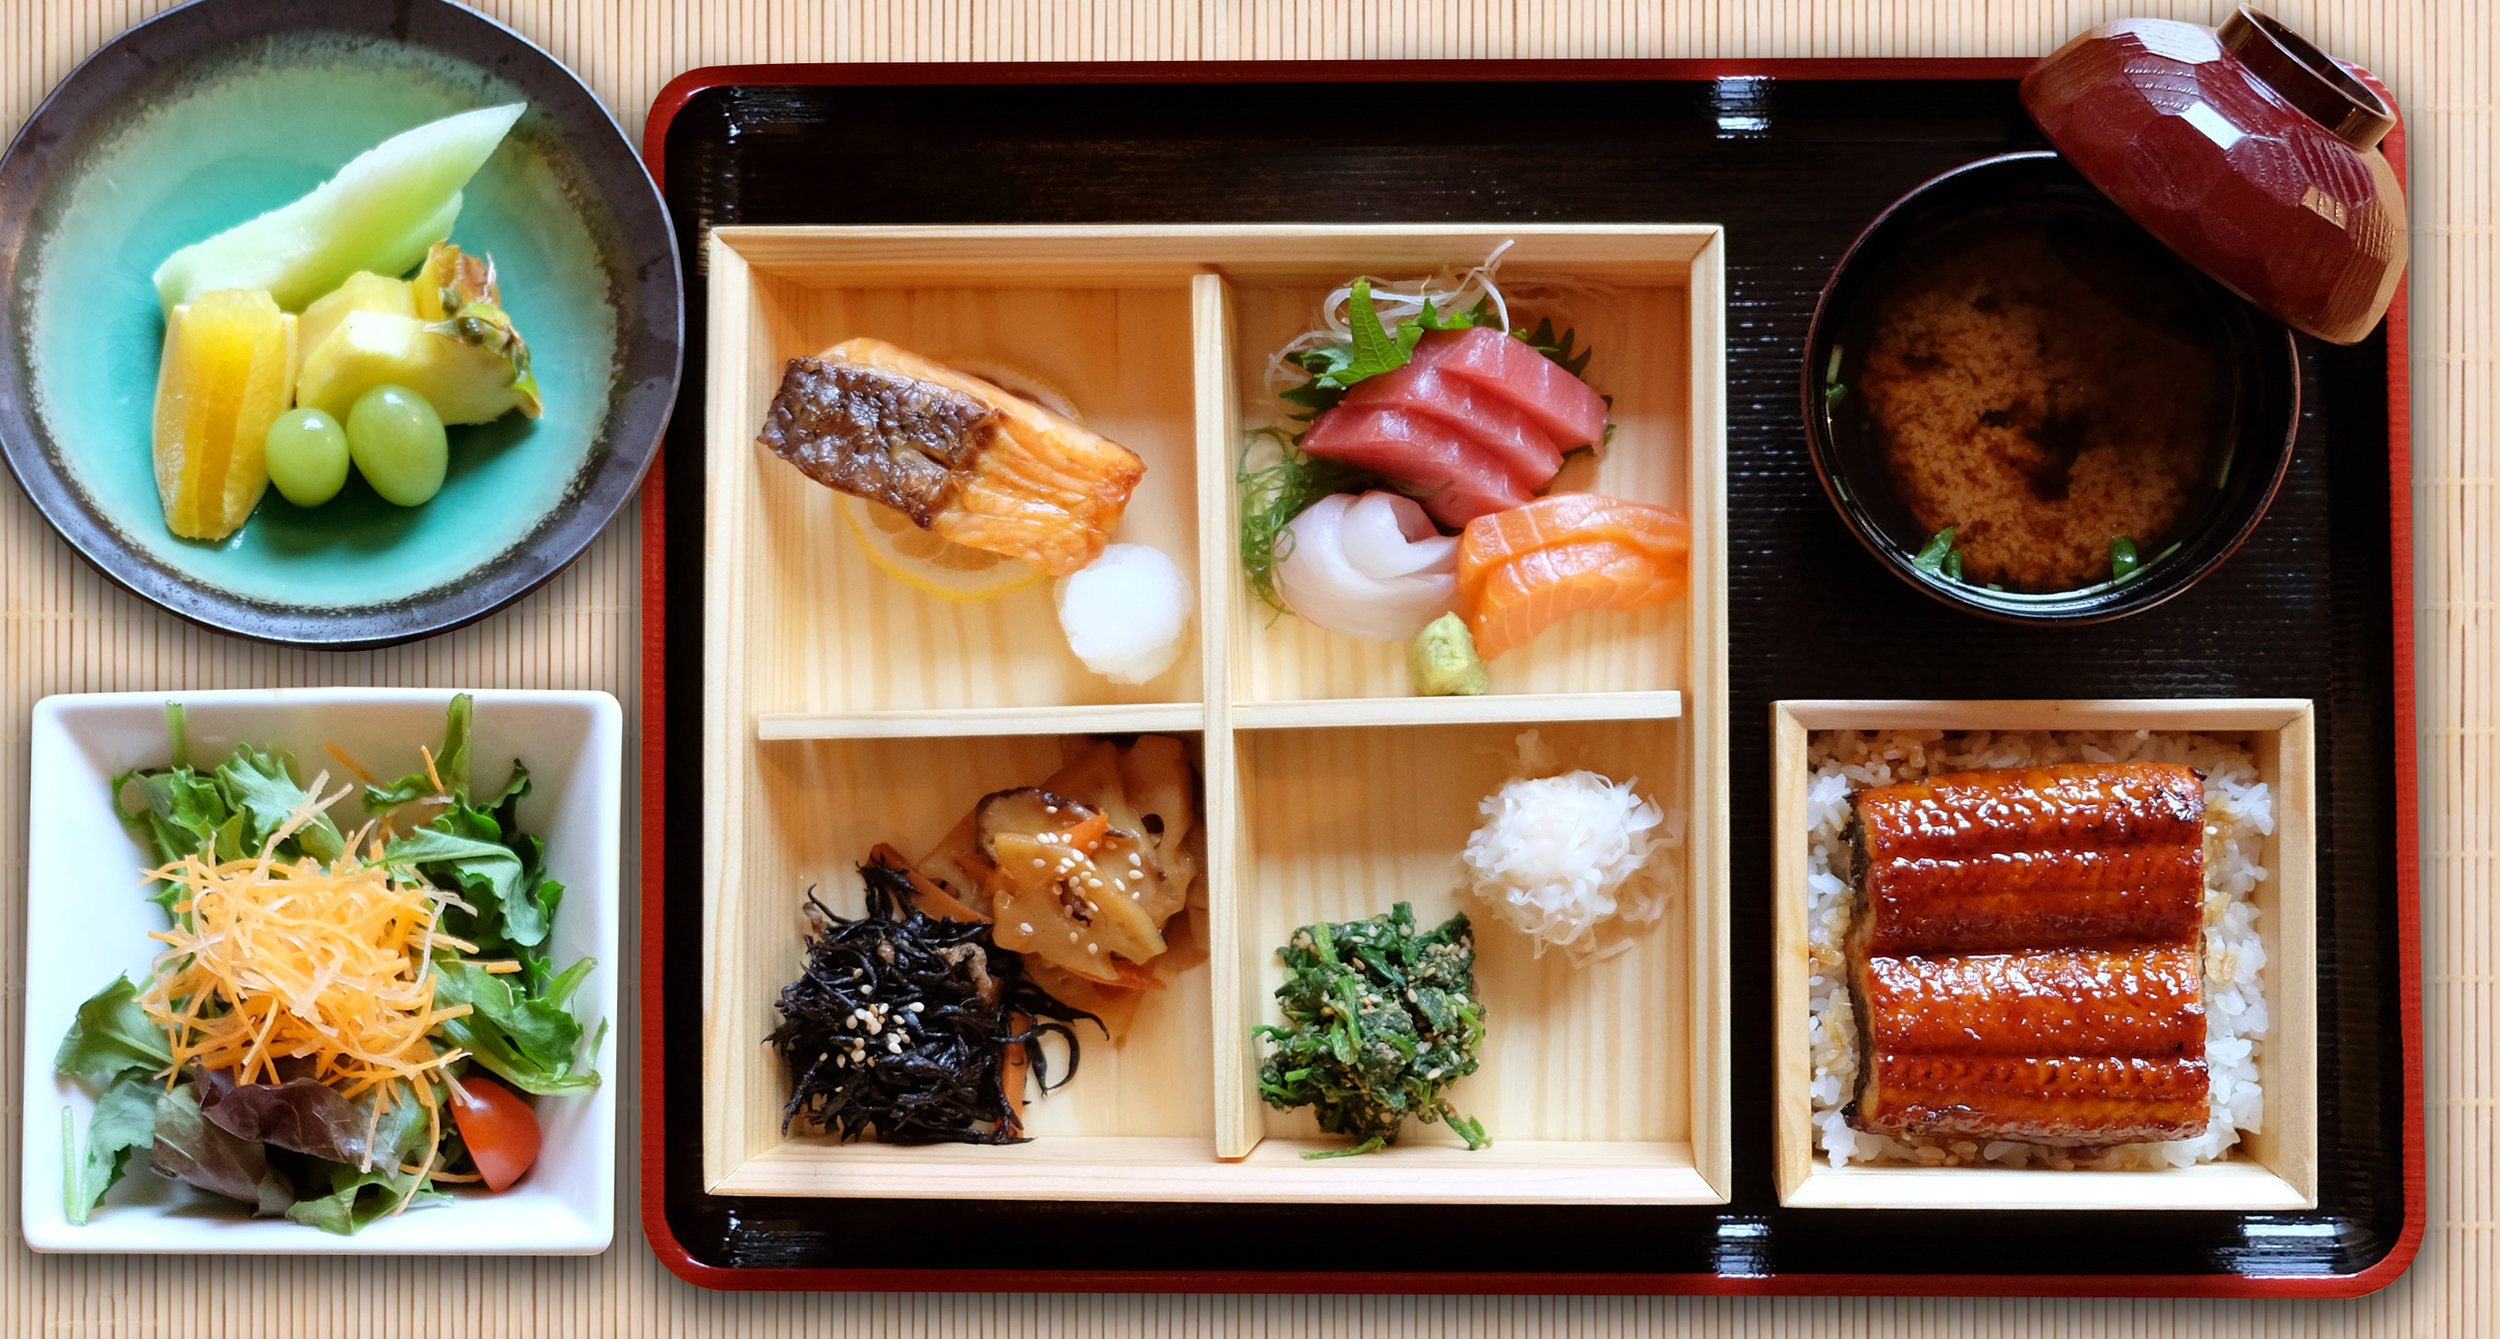 Lunch Special – Sashimi Bento Box with choice of main dish